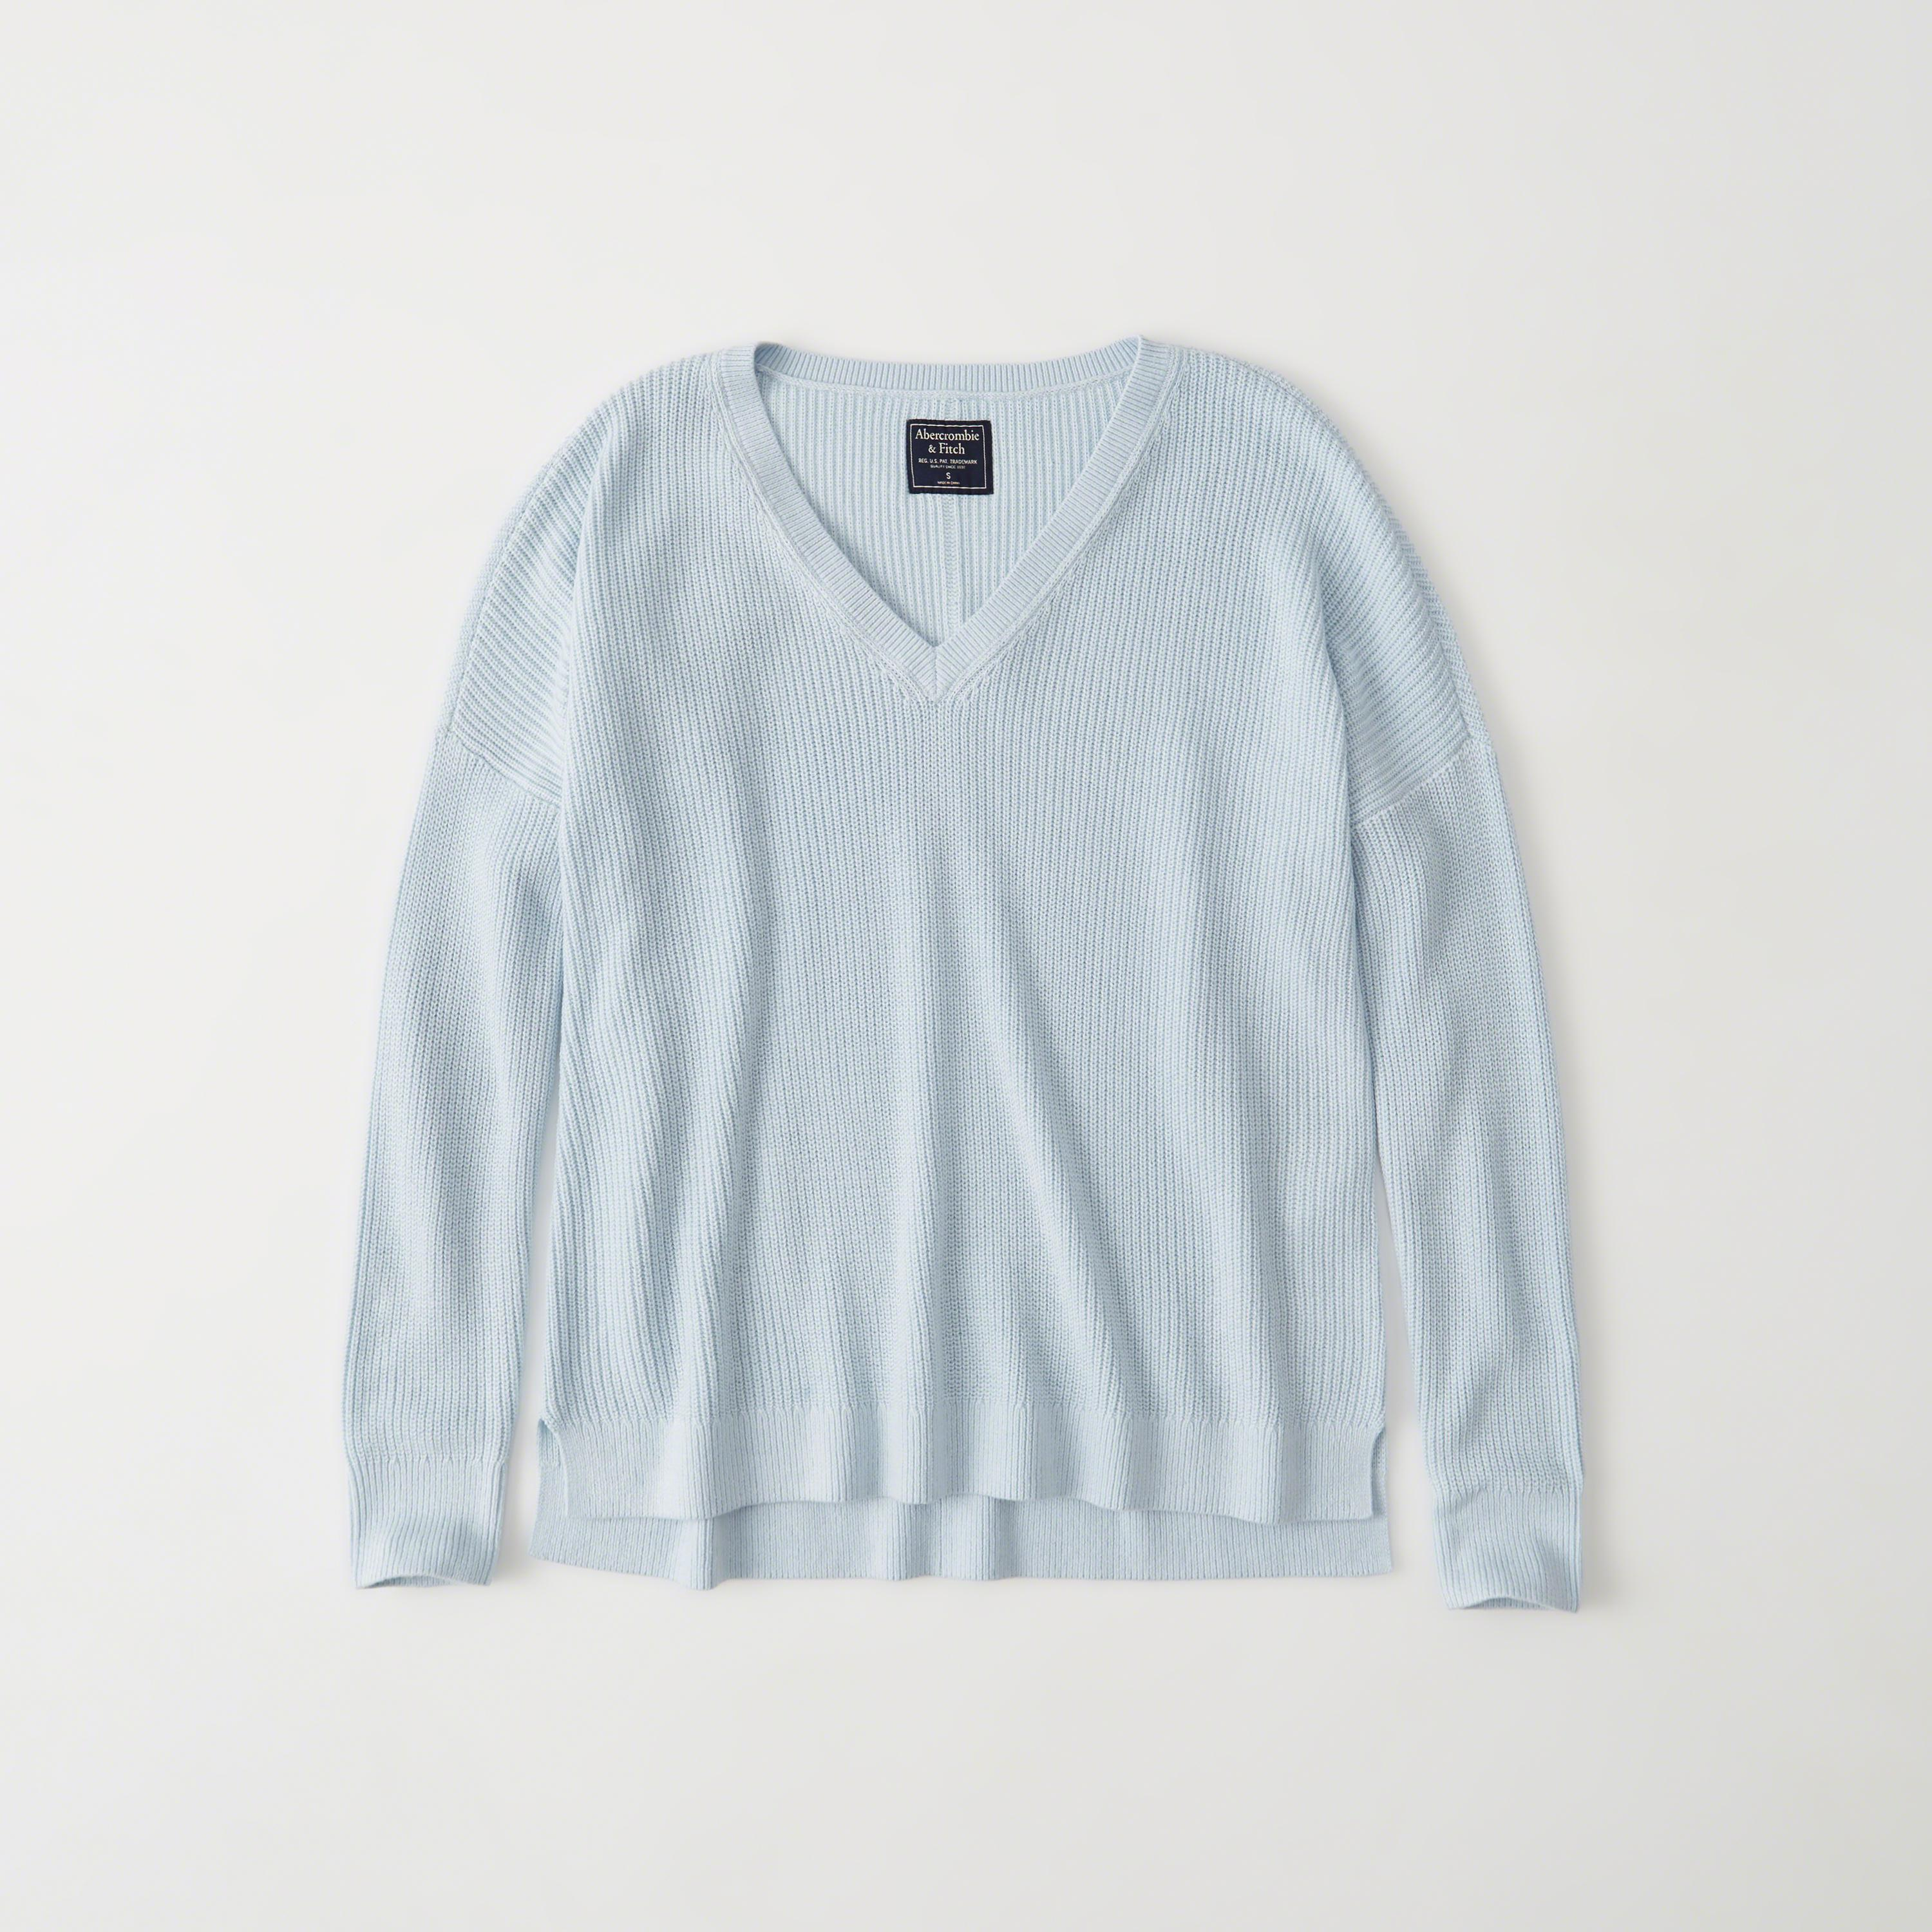 e8d8f2b76c Lyst - Abercrombie   Fitch V-neck Sweater in Blue